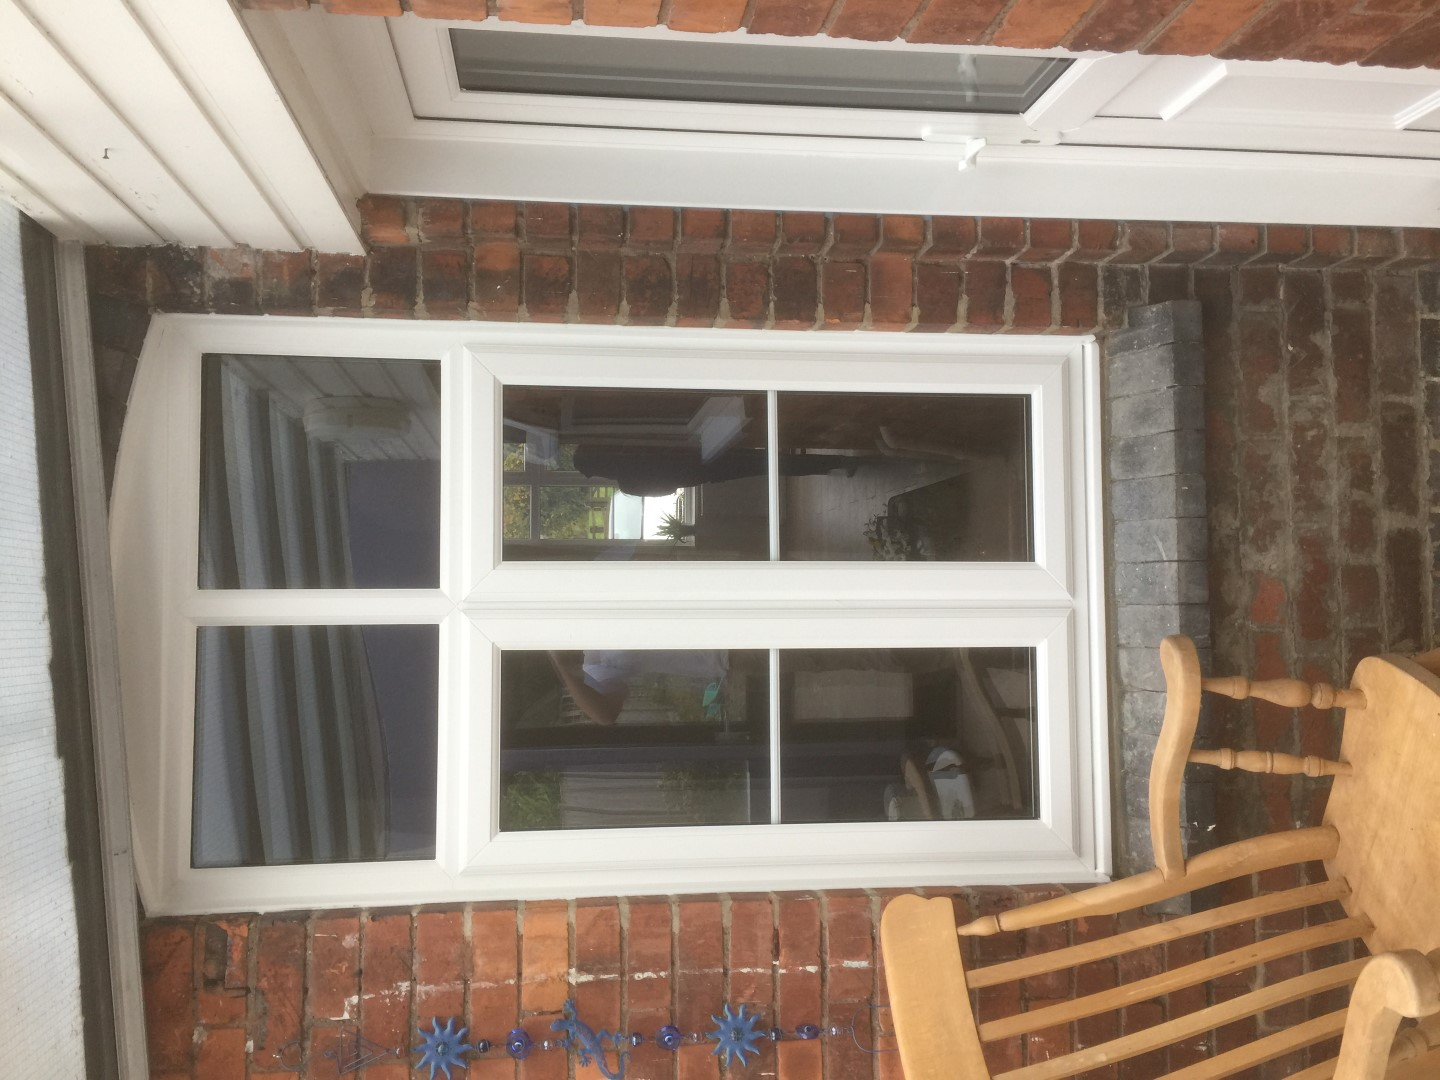 New window with georigan bars